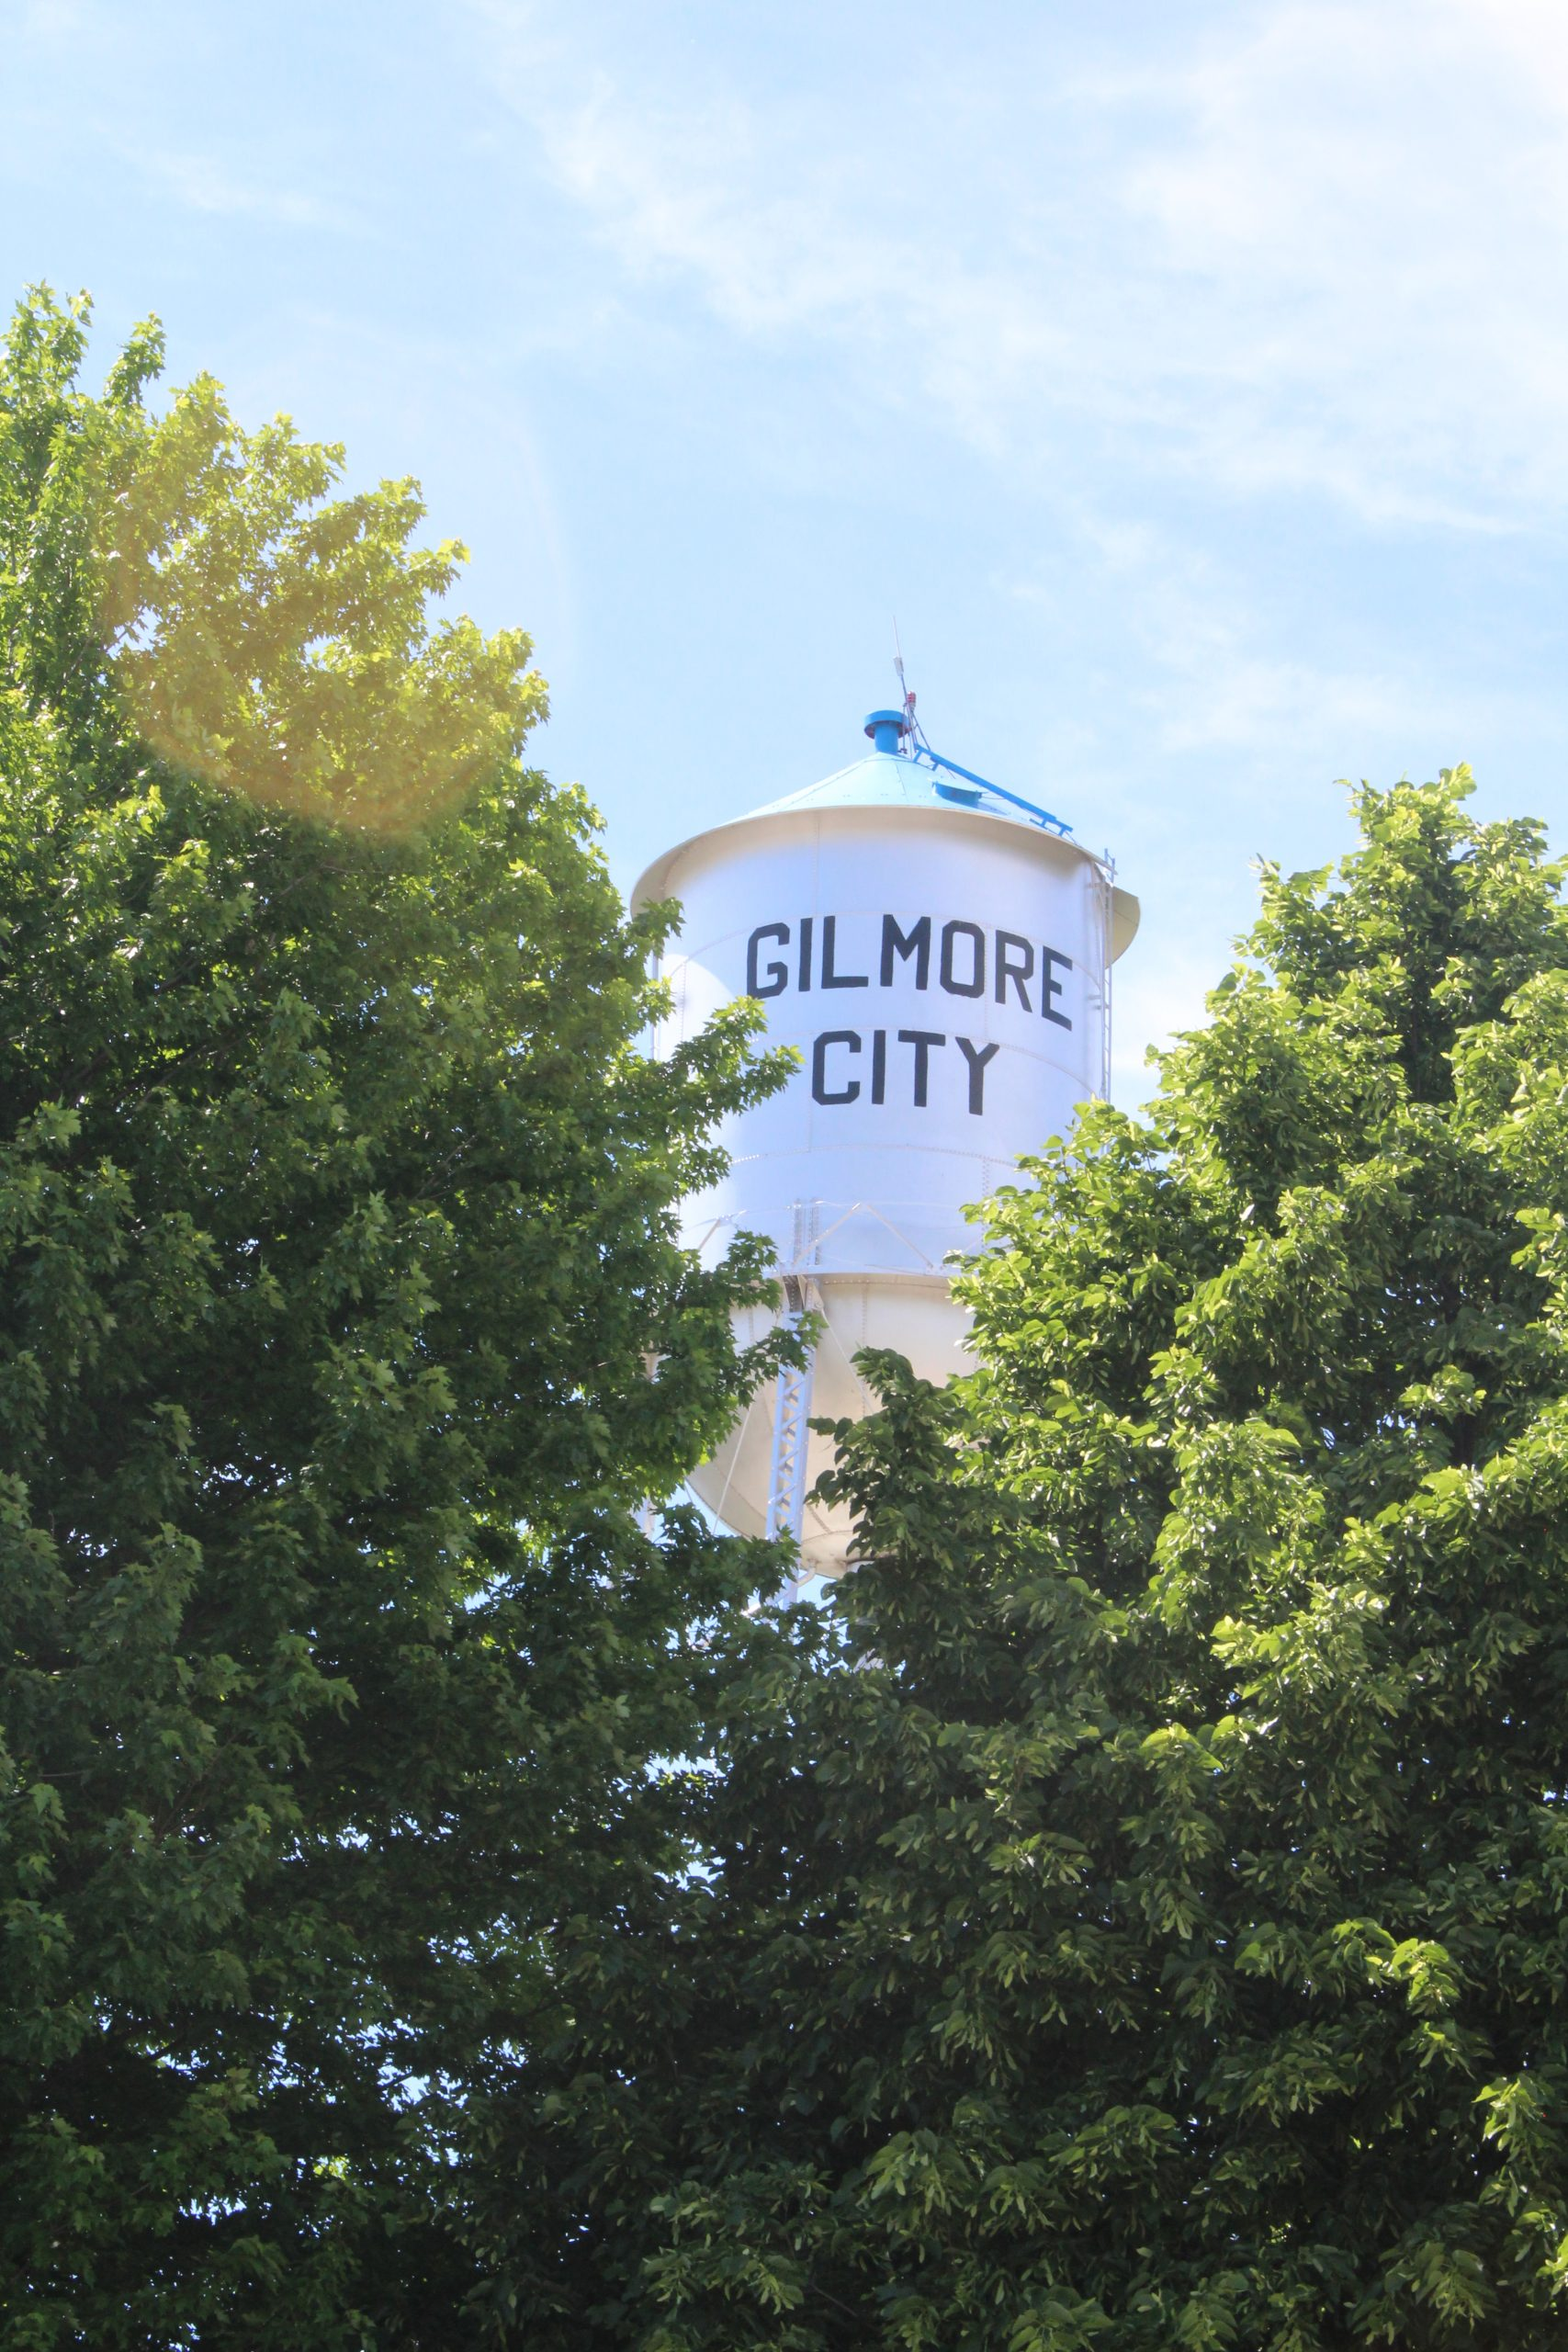 View of Gilmore City water tower through trees